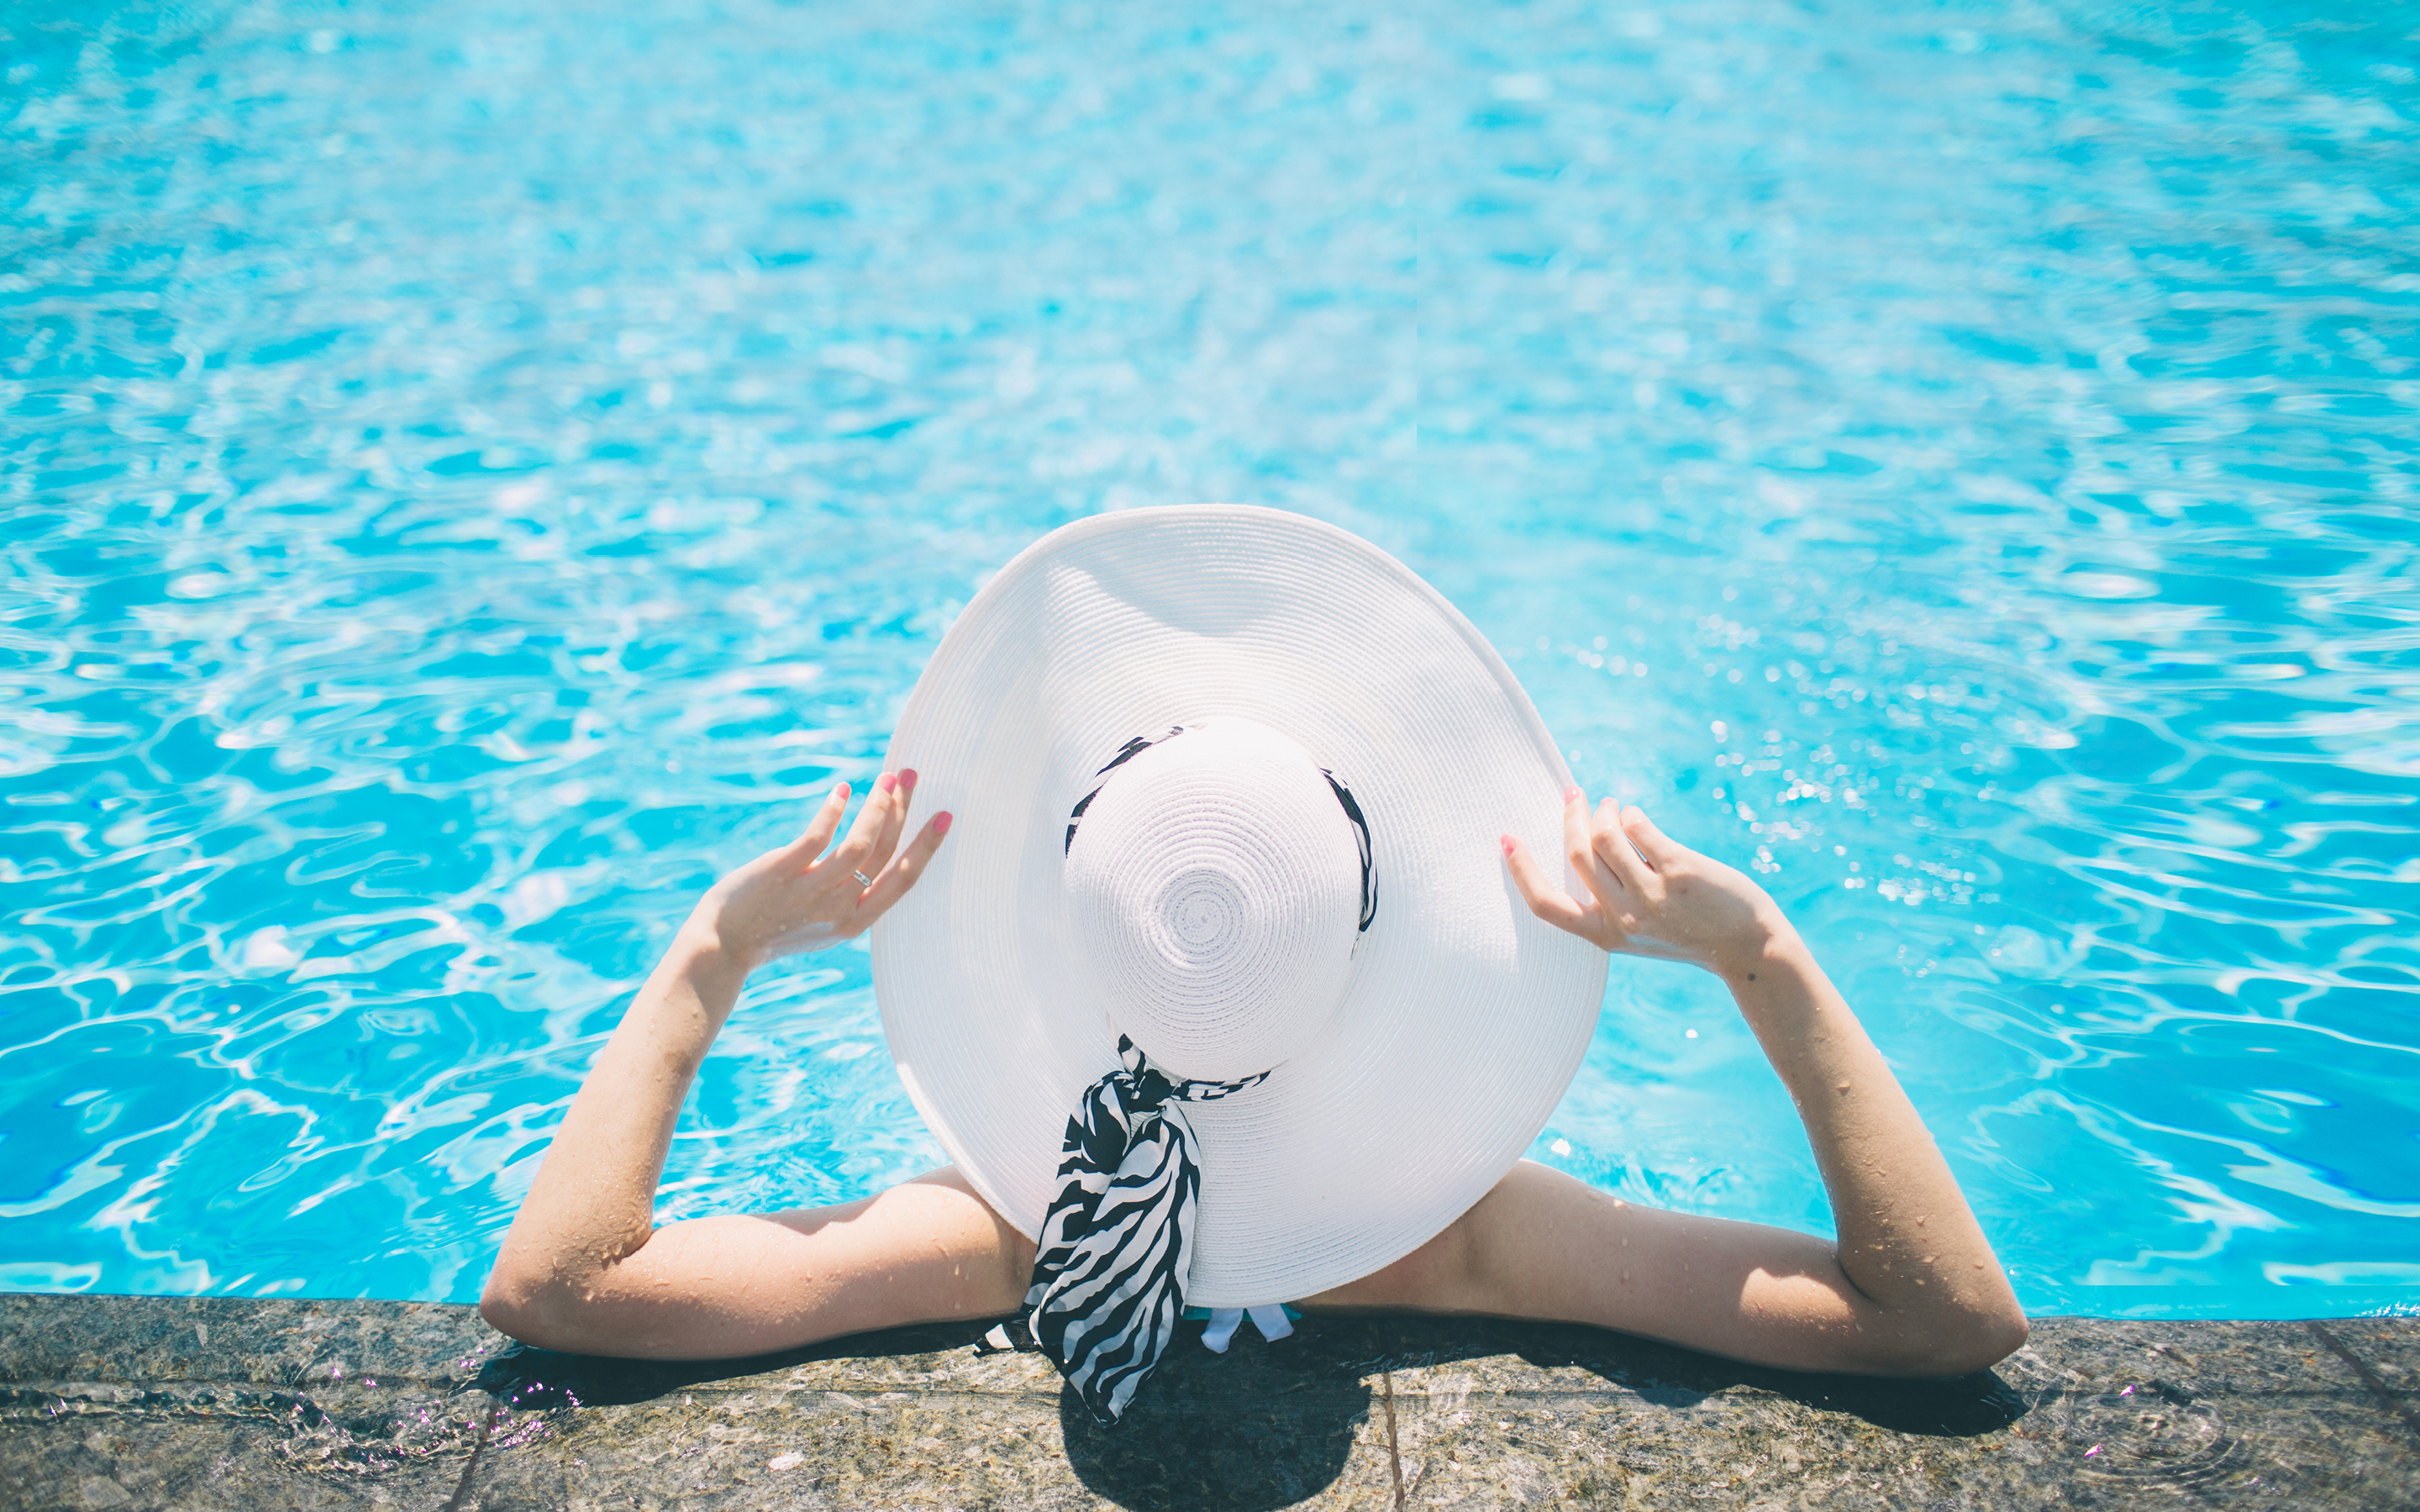 Woman lounging in the pool wearing a hat.